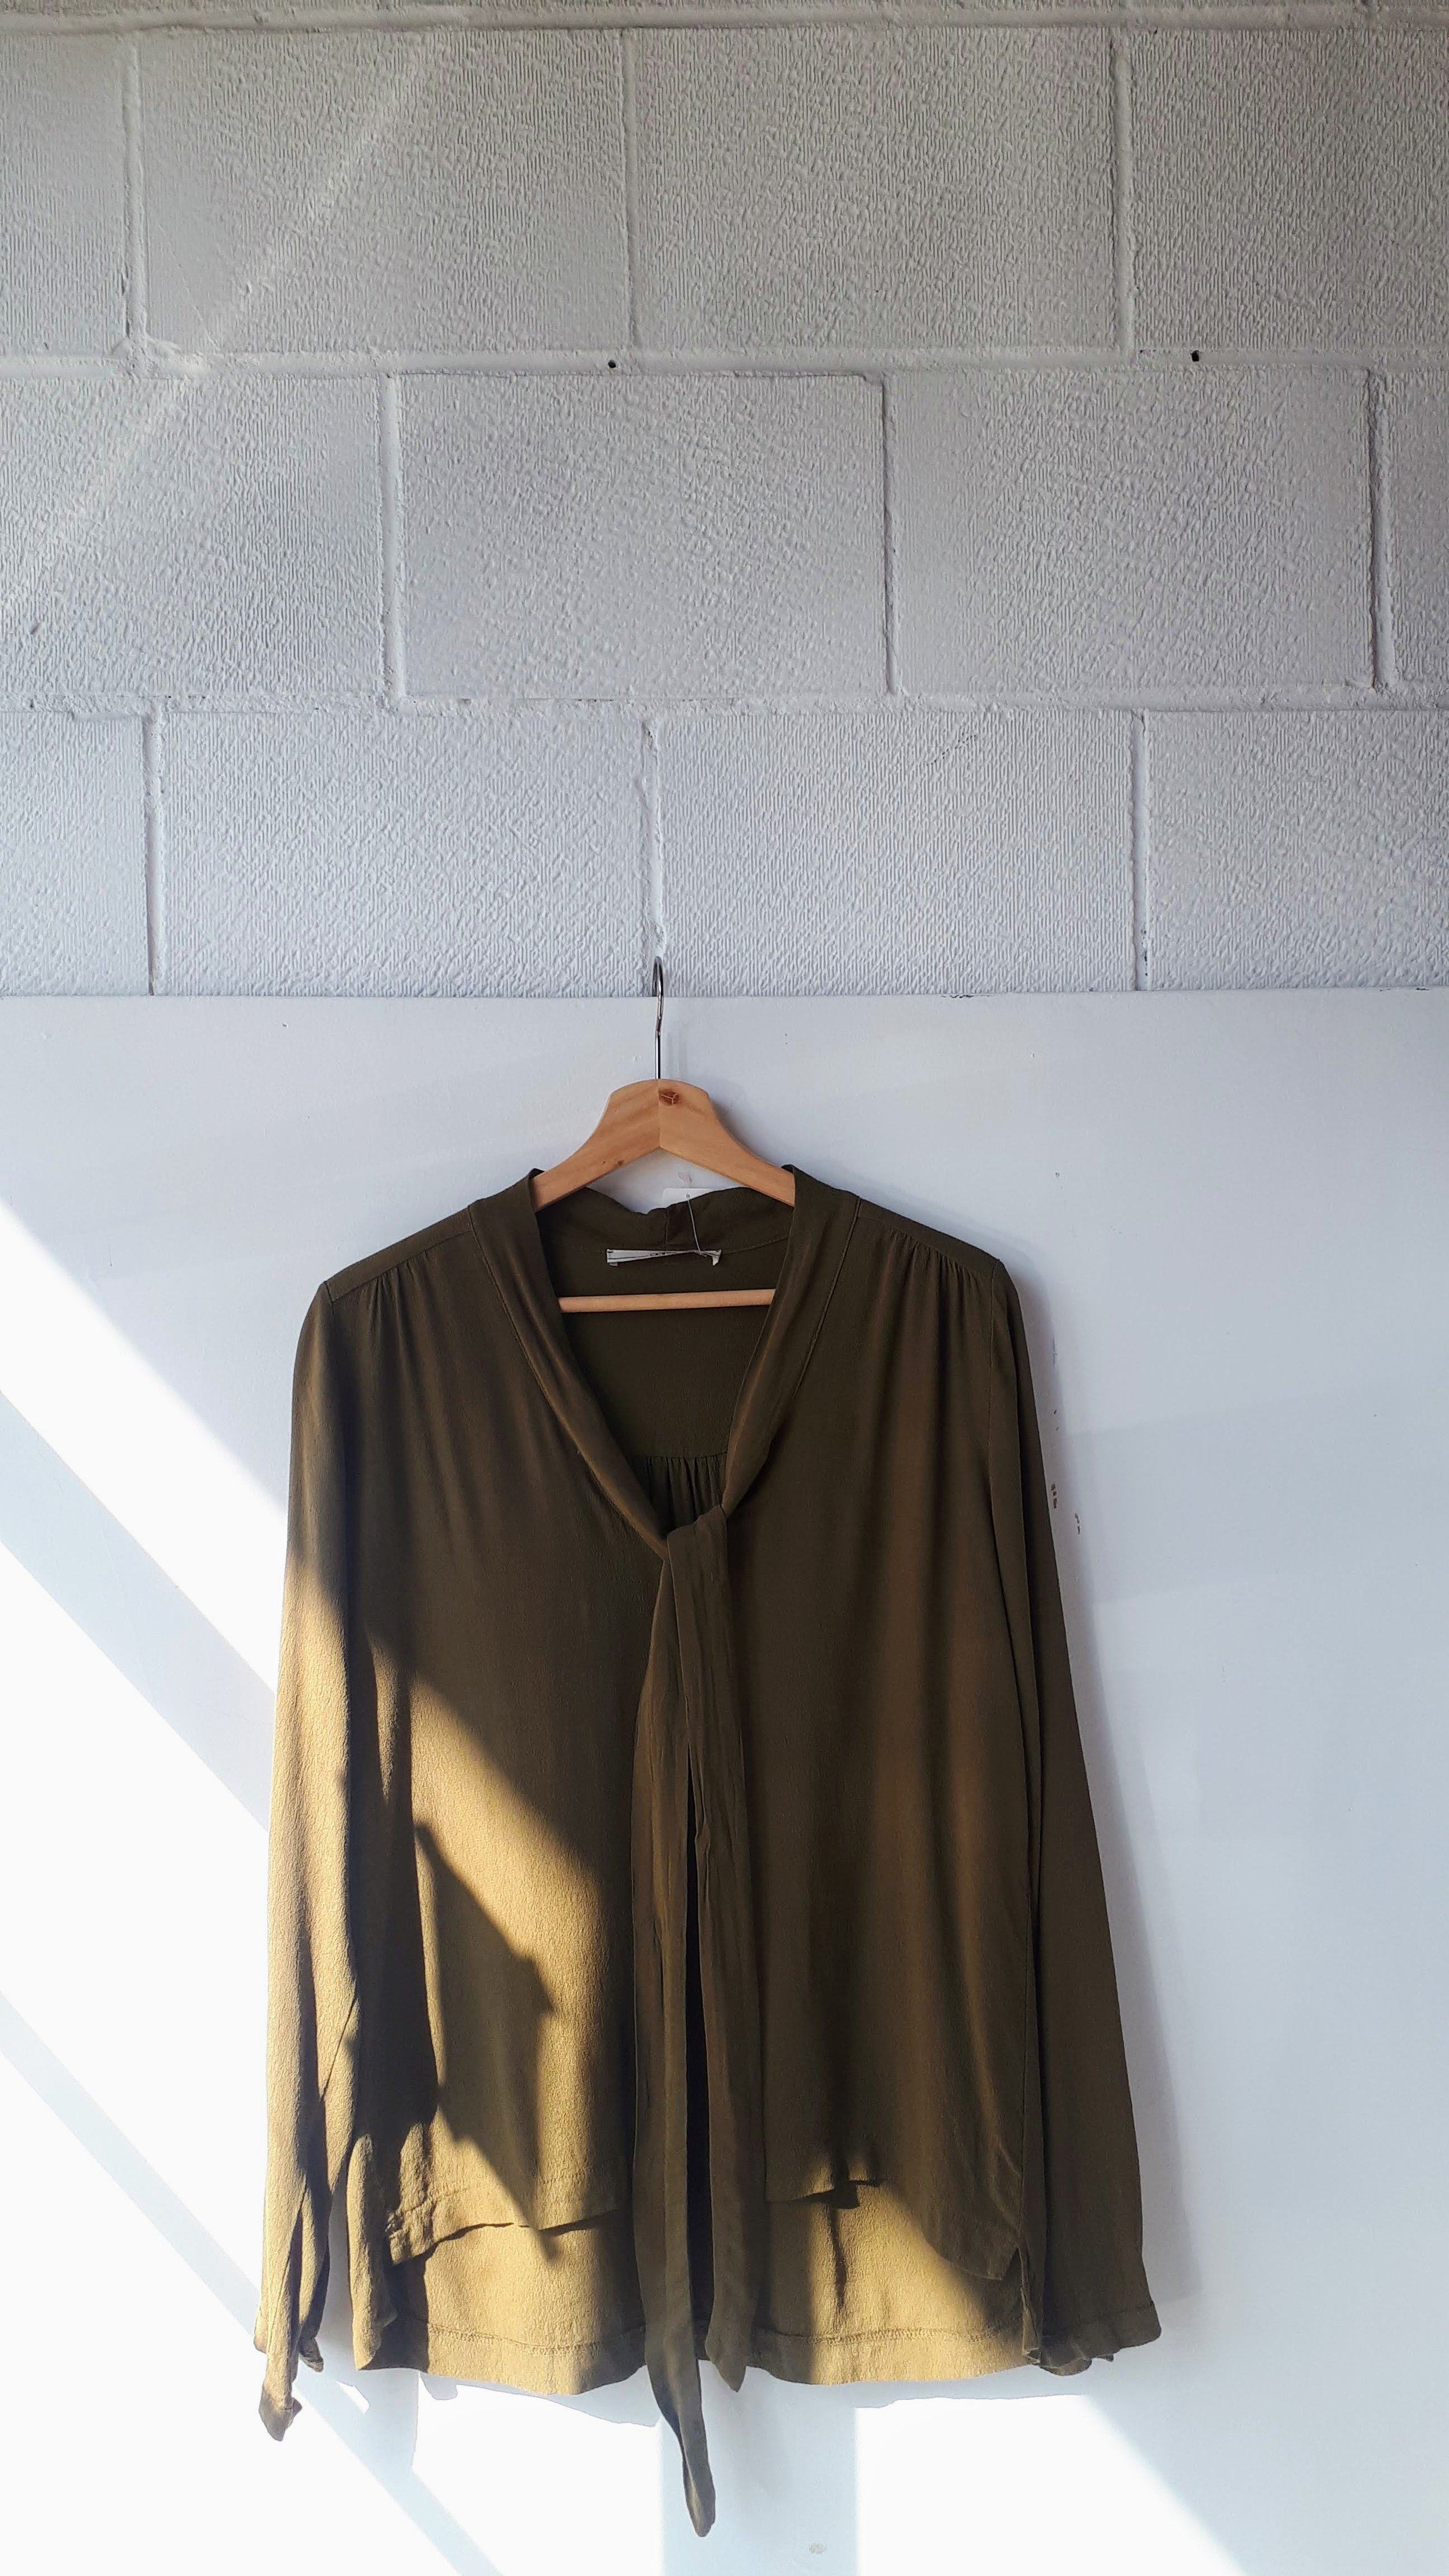 Aiko top; Size M, $30 (now $15!)